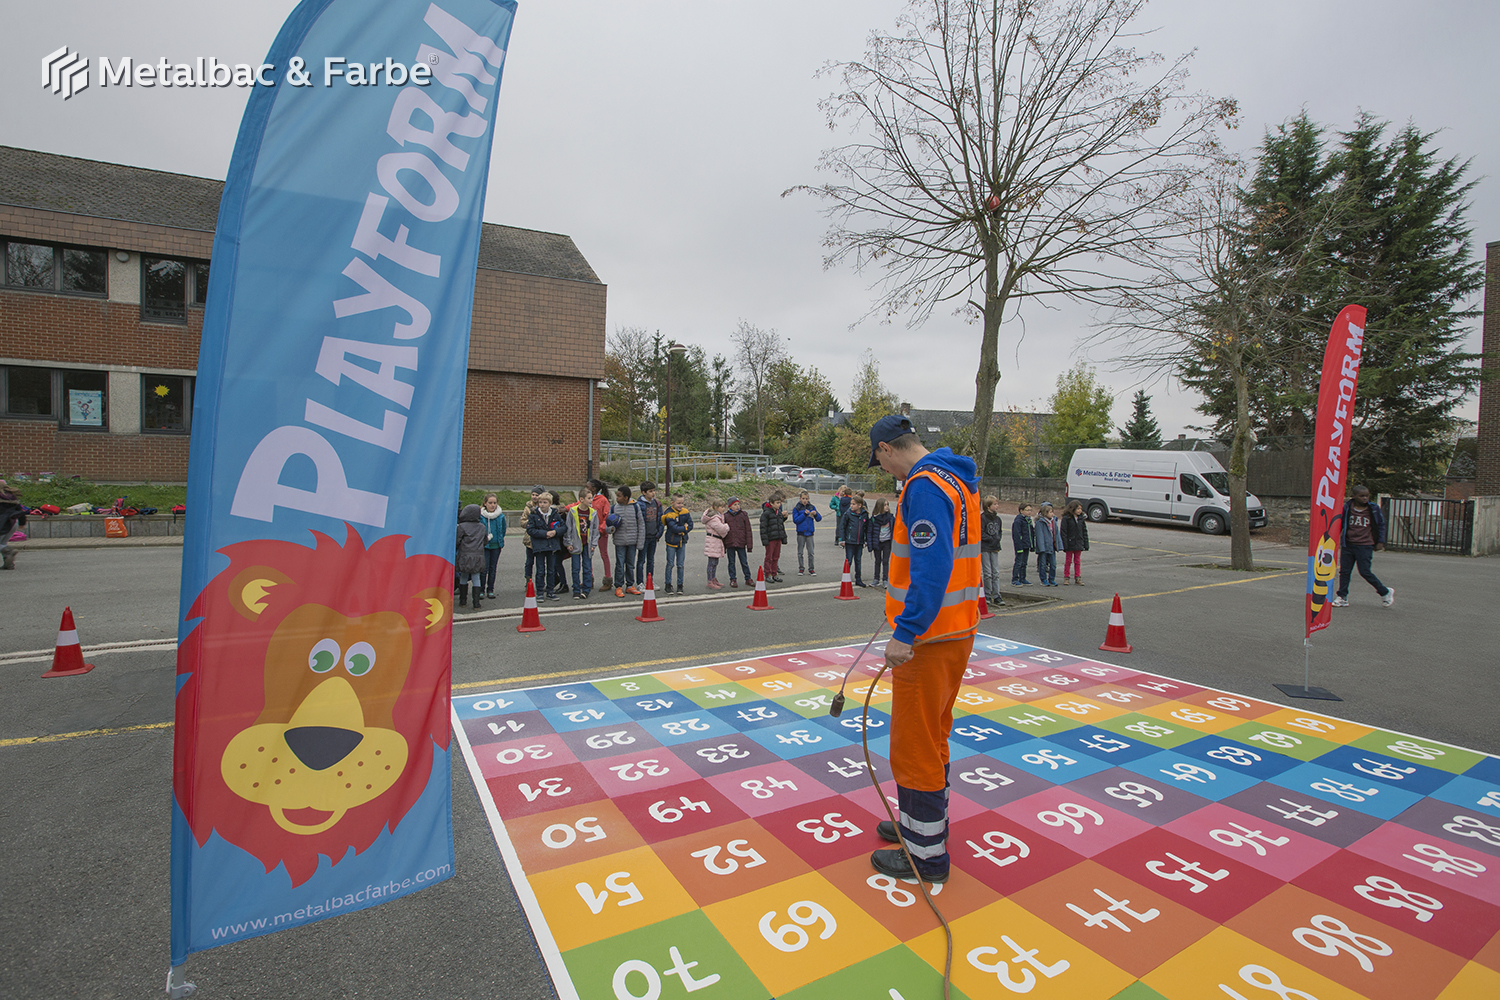 playground markings games; playground games for kids; outdoor play; math games; school yard games; educational games; asphalt games; interactive games; road markings signs; road traffic signs; alphabet game; snail games; handicap parking sign